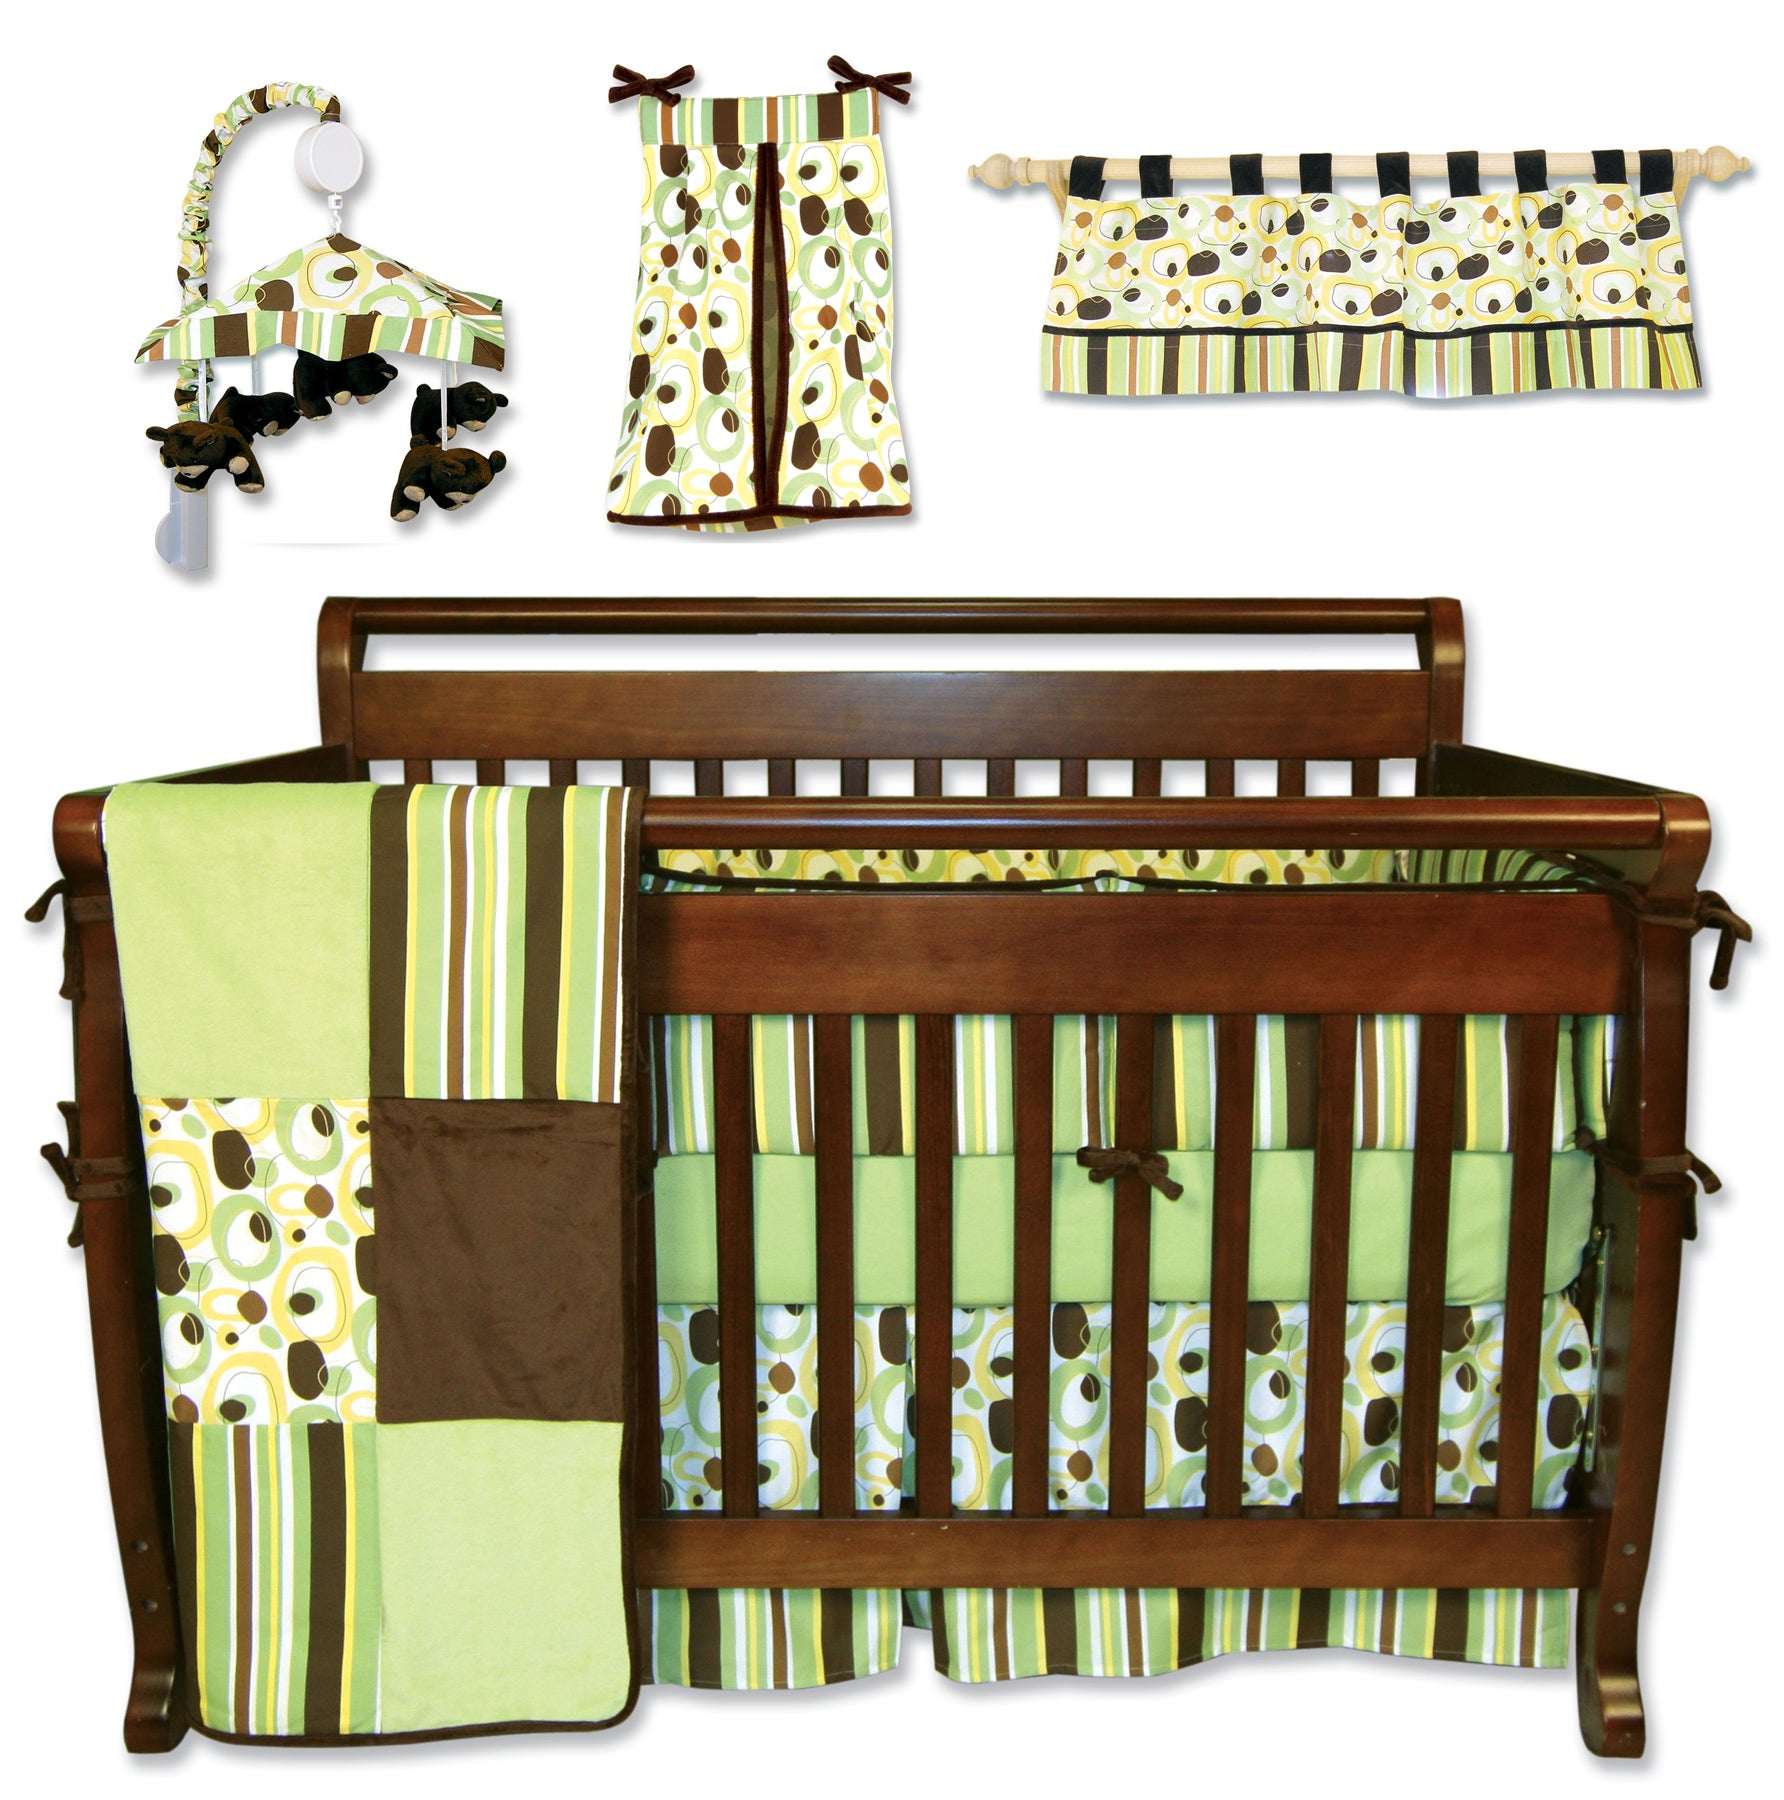 Giggles Crib Bedding Set